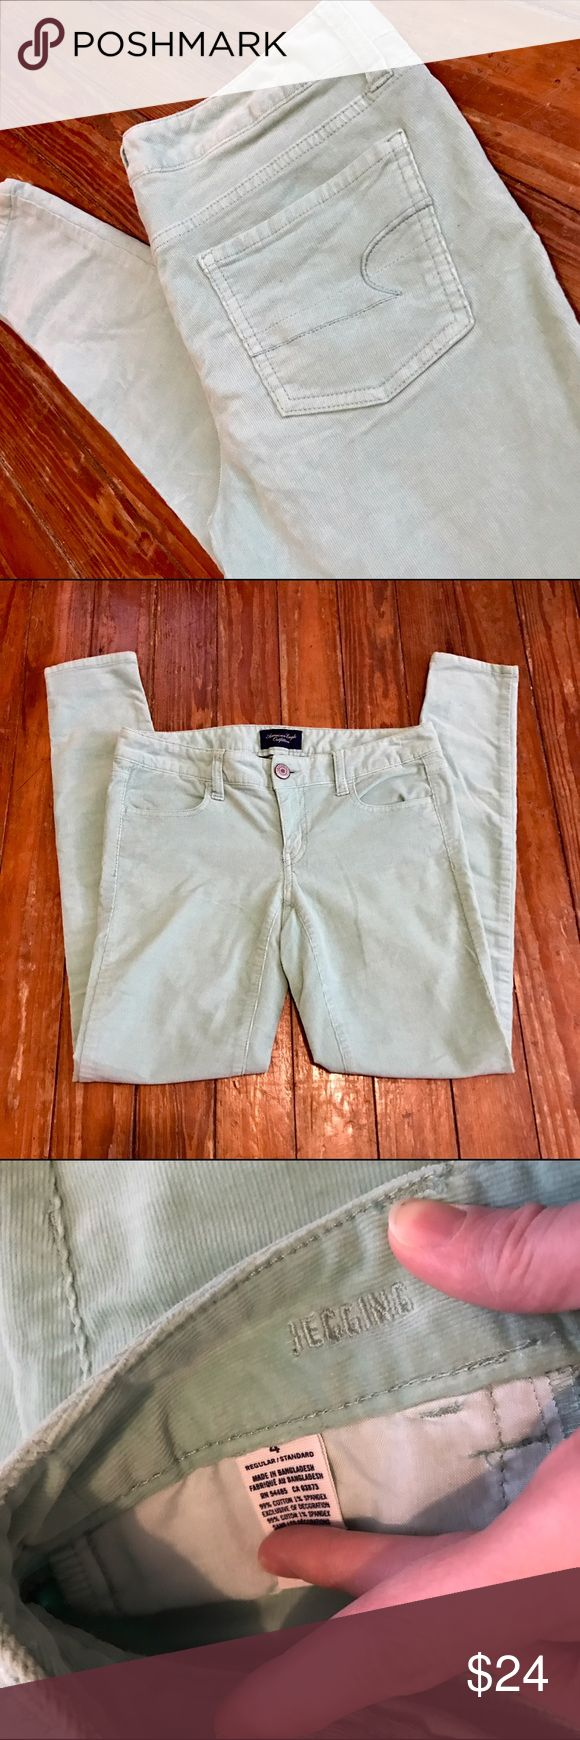 American Eagle Mint Green Corduroy Jeggings size 4 Thank you for looking at my listing!! This listing is for a pair of American Eagle Mint Green Corduroy Jeggings size 4. If you have any questions about this item feel free to contact me!! American Eagle Outfitters Jeans Skinny